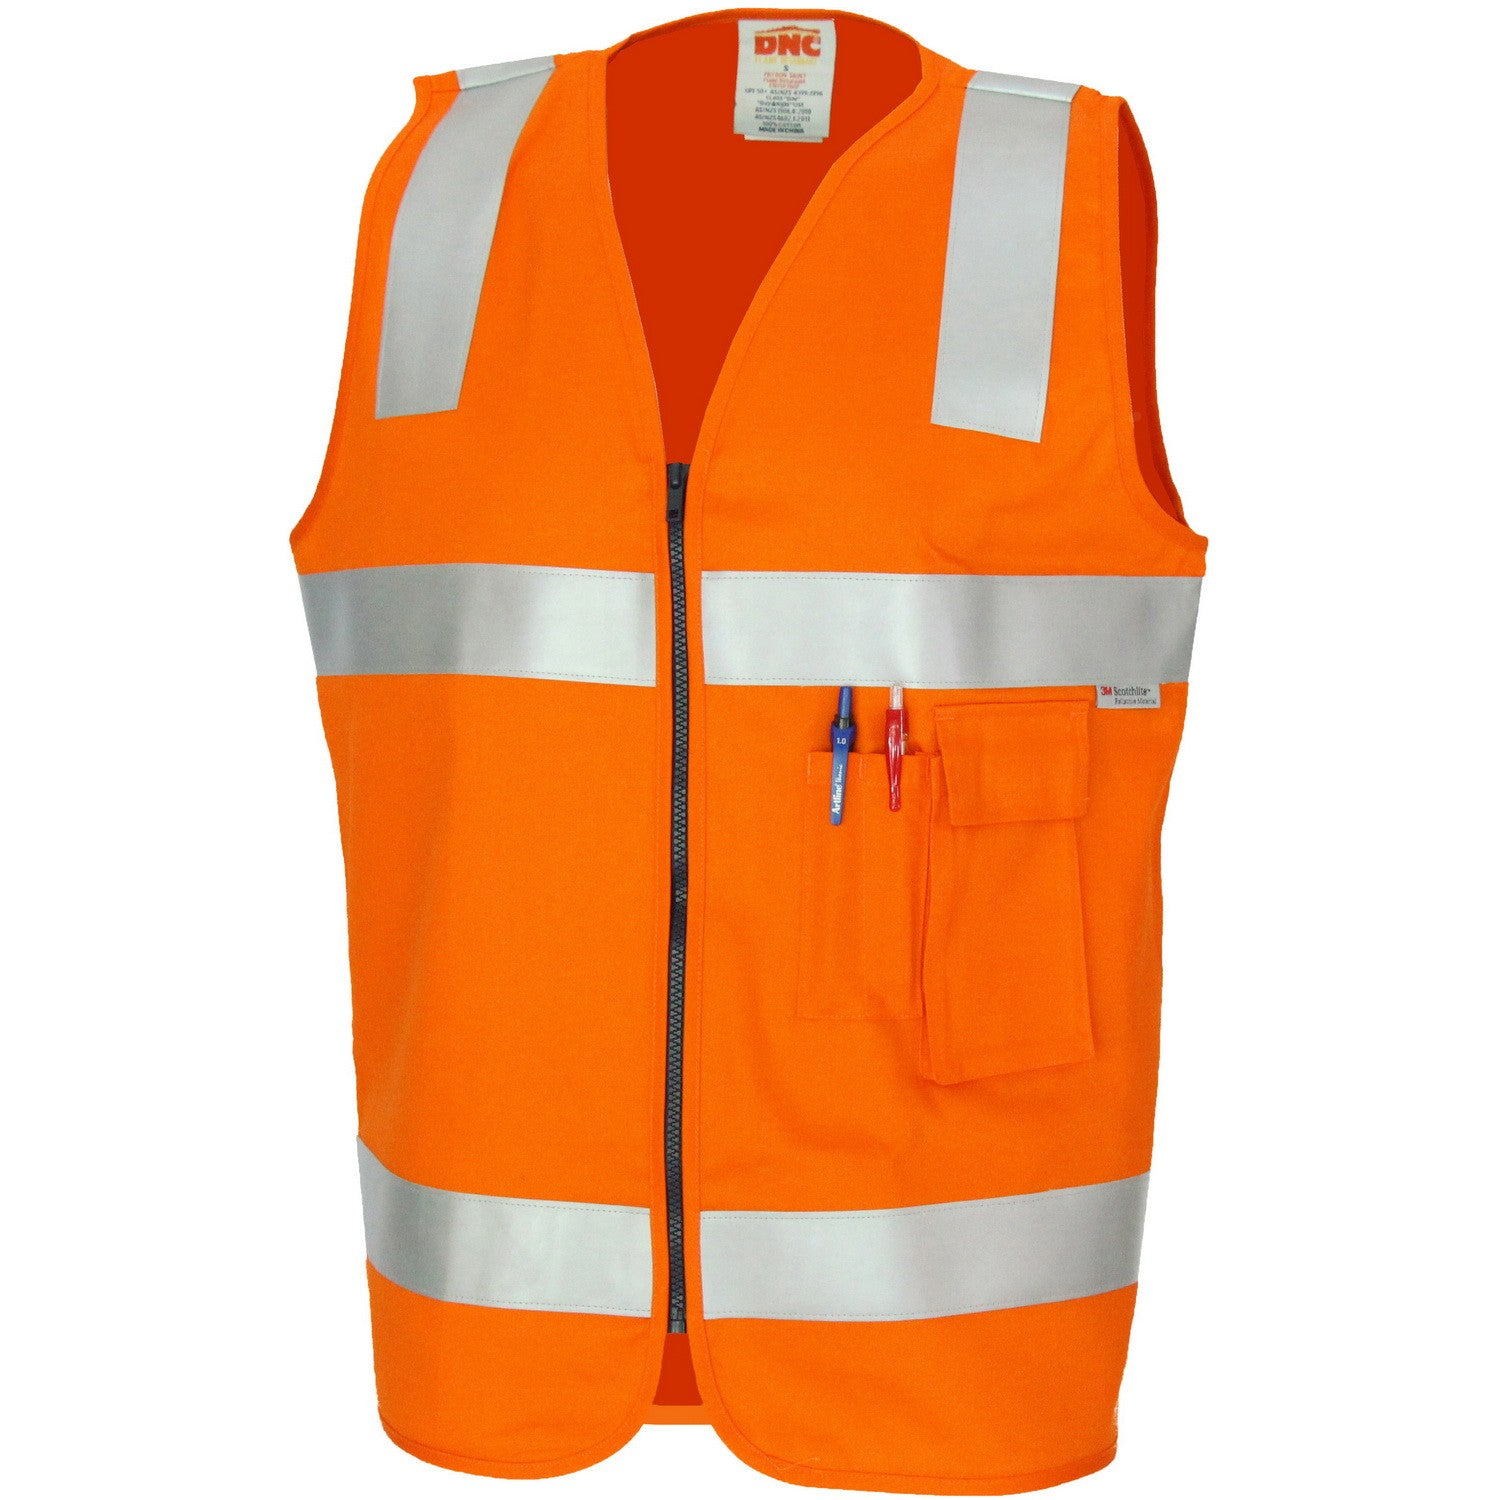 Safety Clothing Orange Work Reflective Jacket Safety Mesh Vest With 3m Tape Fancy Colours Workplace Safety Supplies